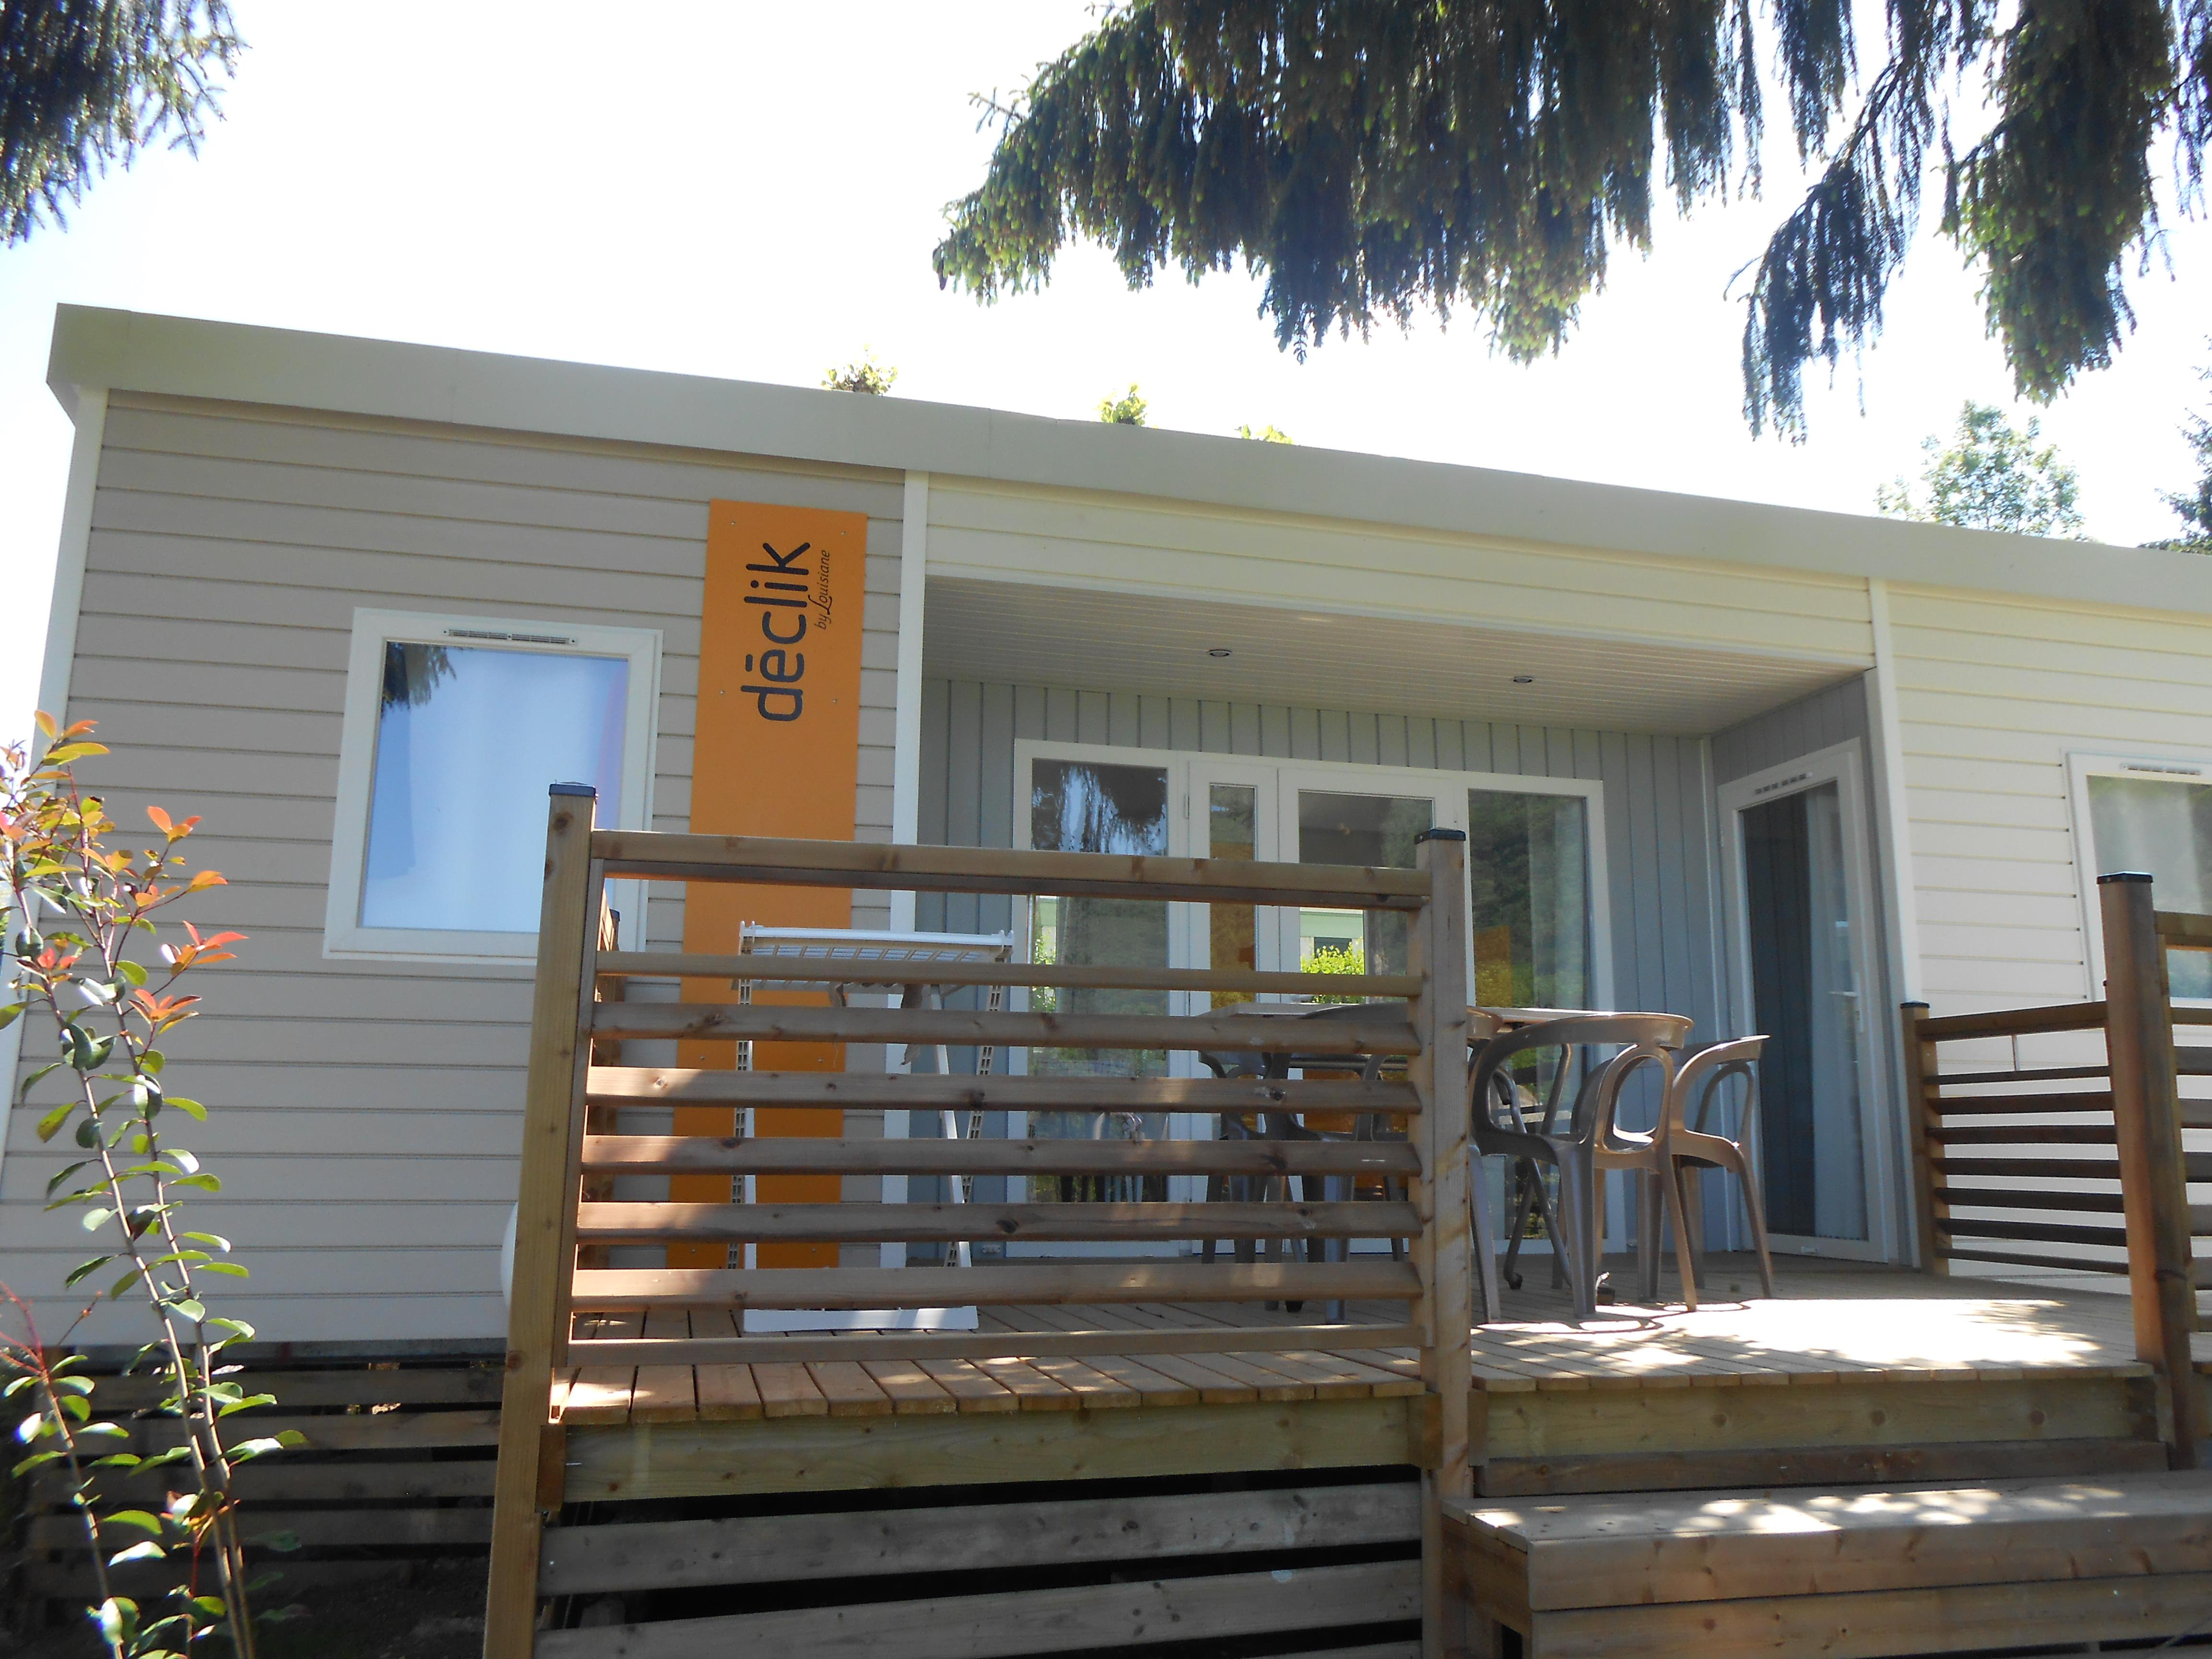 Location - Mobil Home Declick 28M² - 2 Chambres, 2 Salles De Bain - Camping Le Panoramic